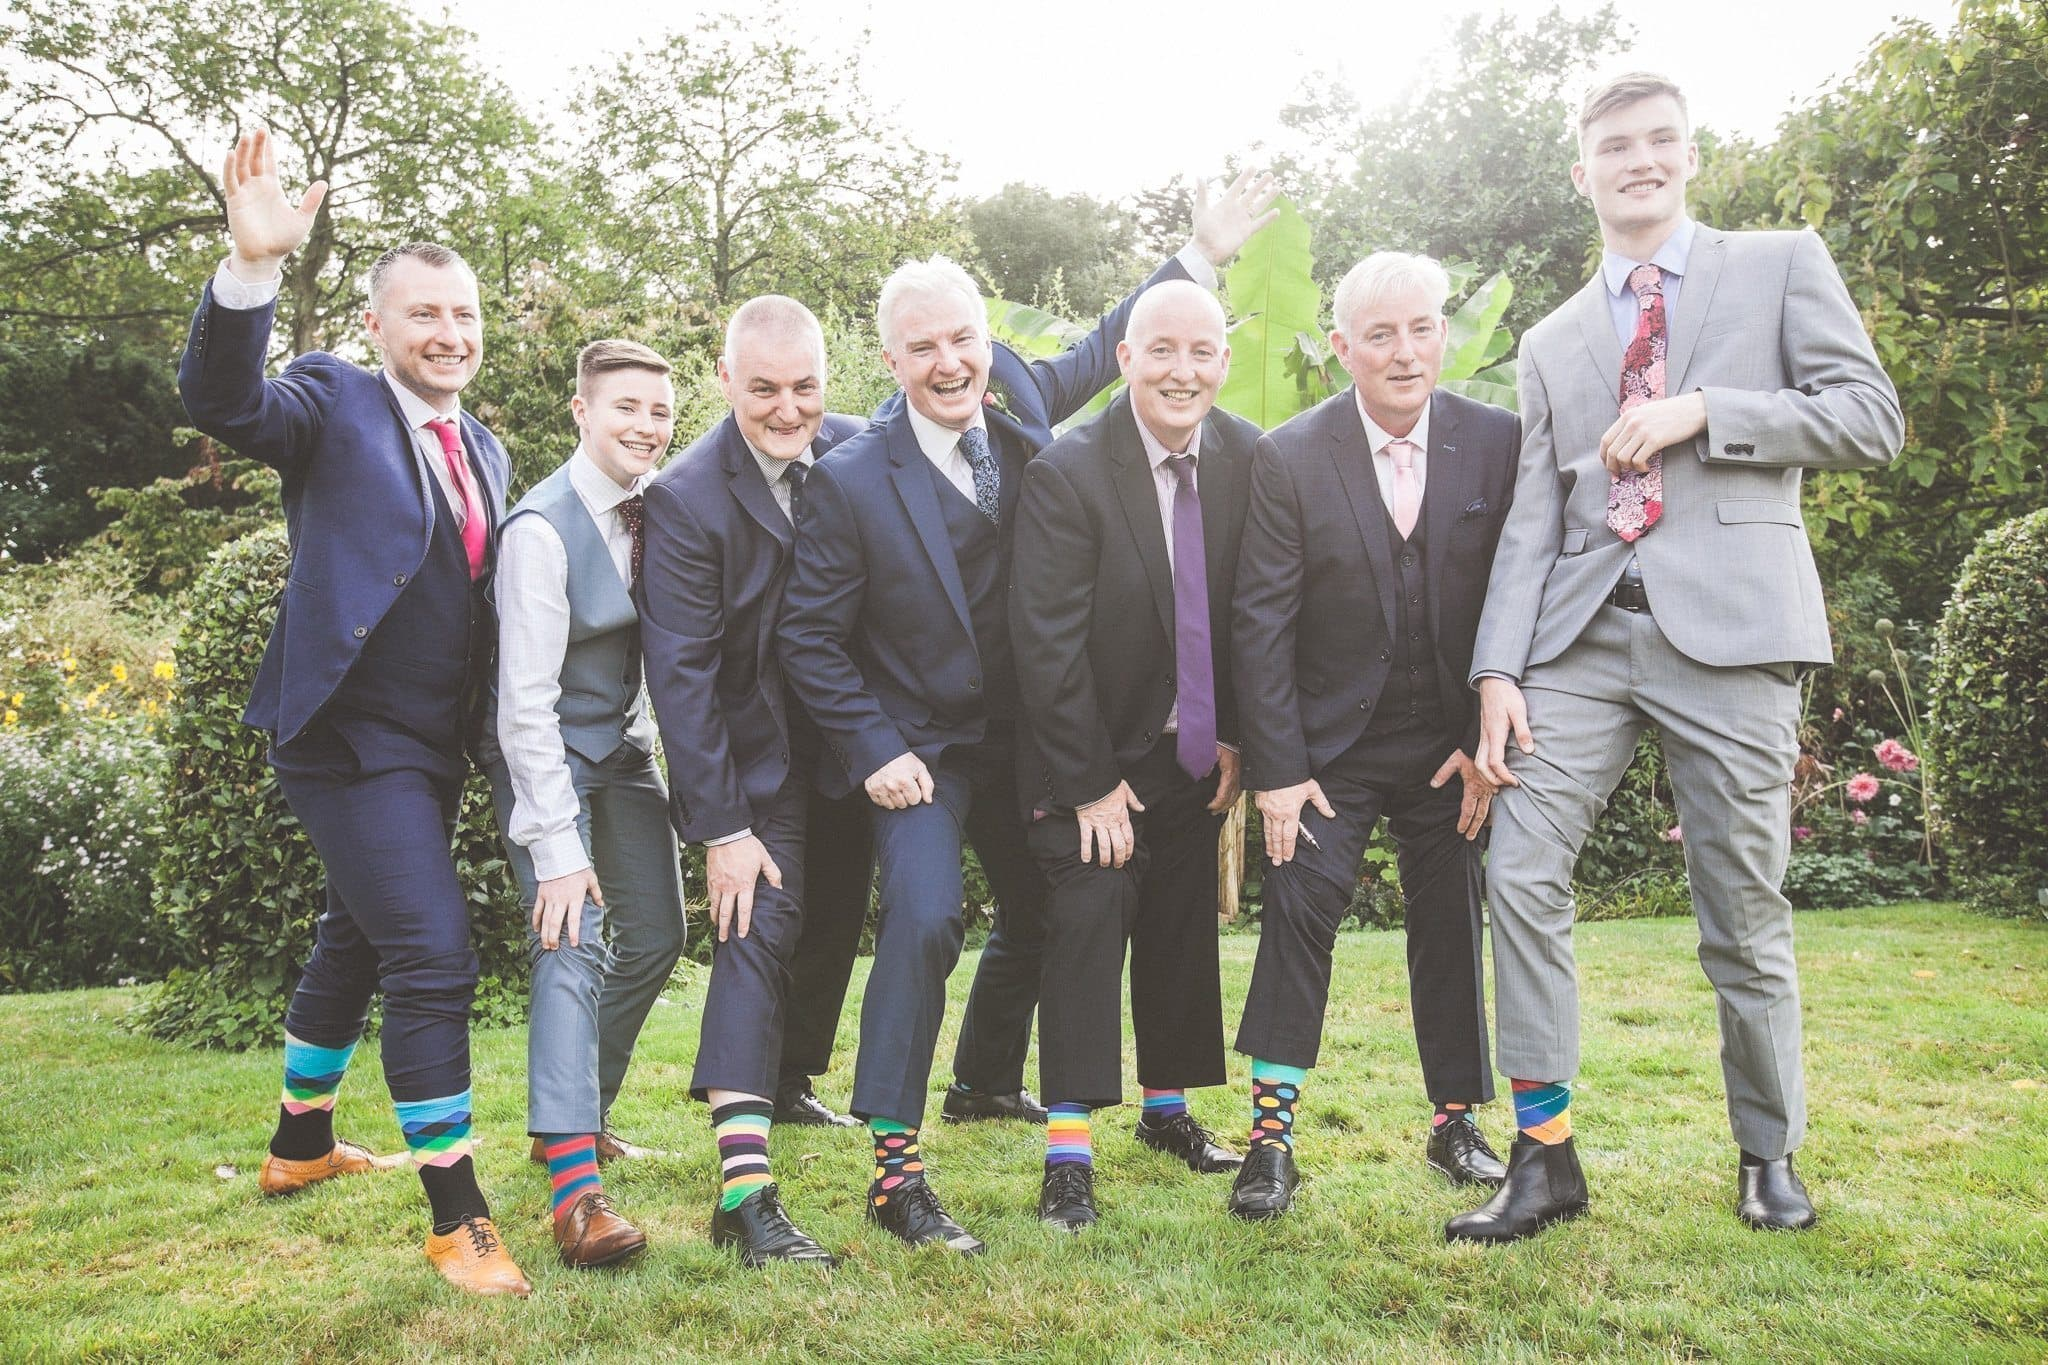 The groomsmen show off their colourful socks